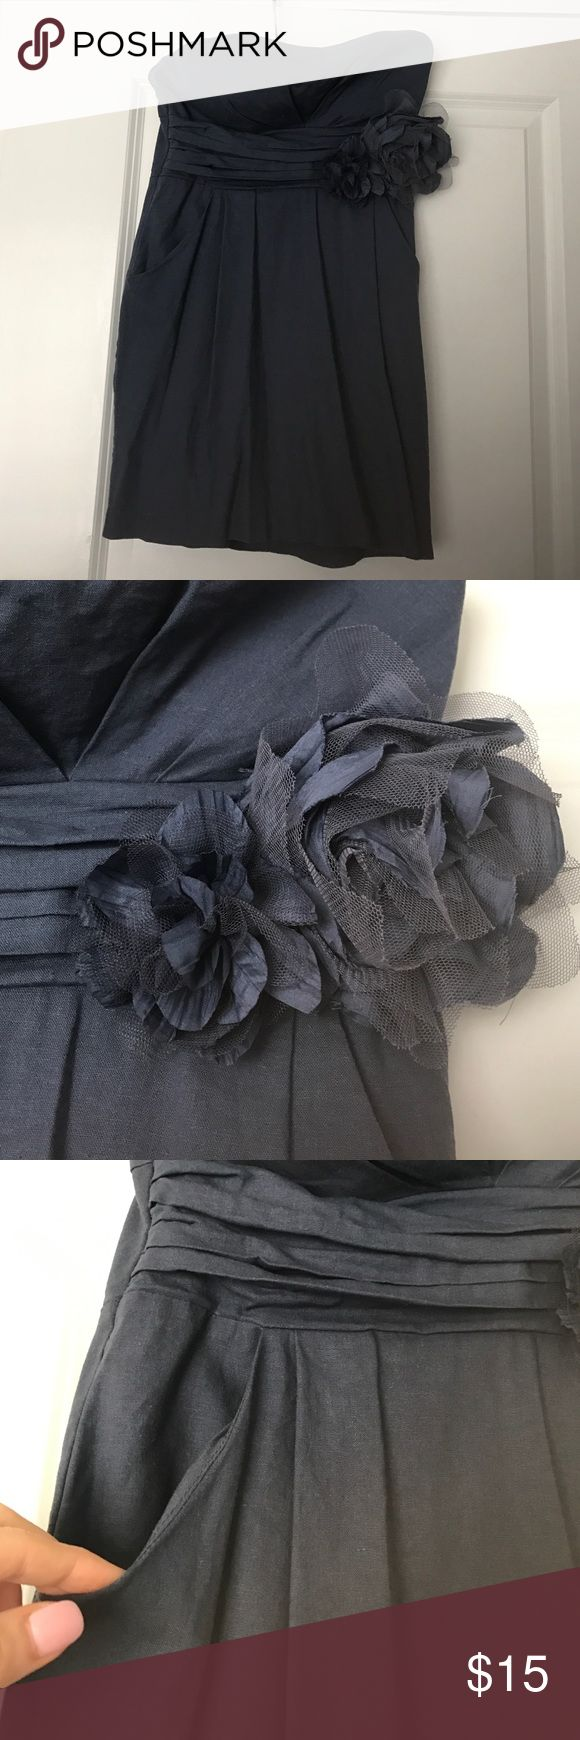 Strapless linen navy mini dress Size Medium (small medium) strapless navy linen mini dress. Has two front pockets and flower detail. Perfect for a beach date! pretty good Dresses Mini